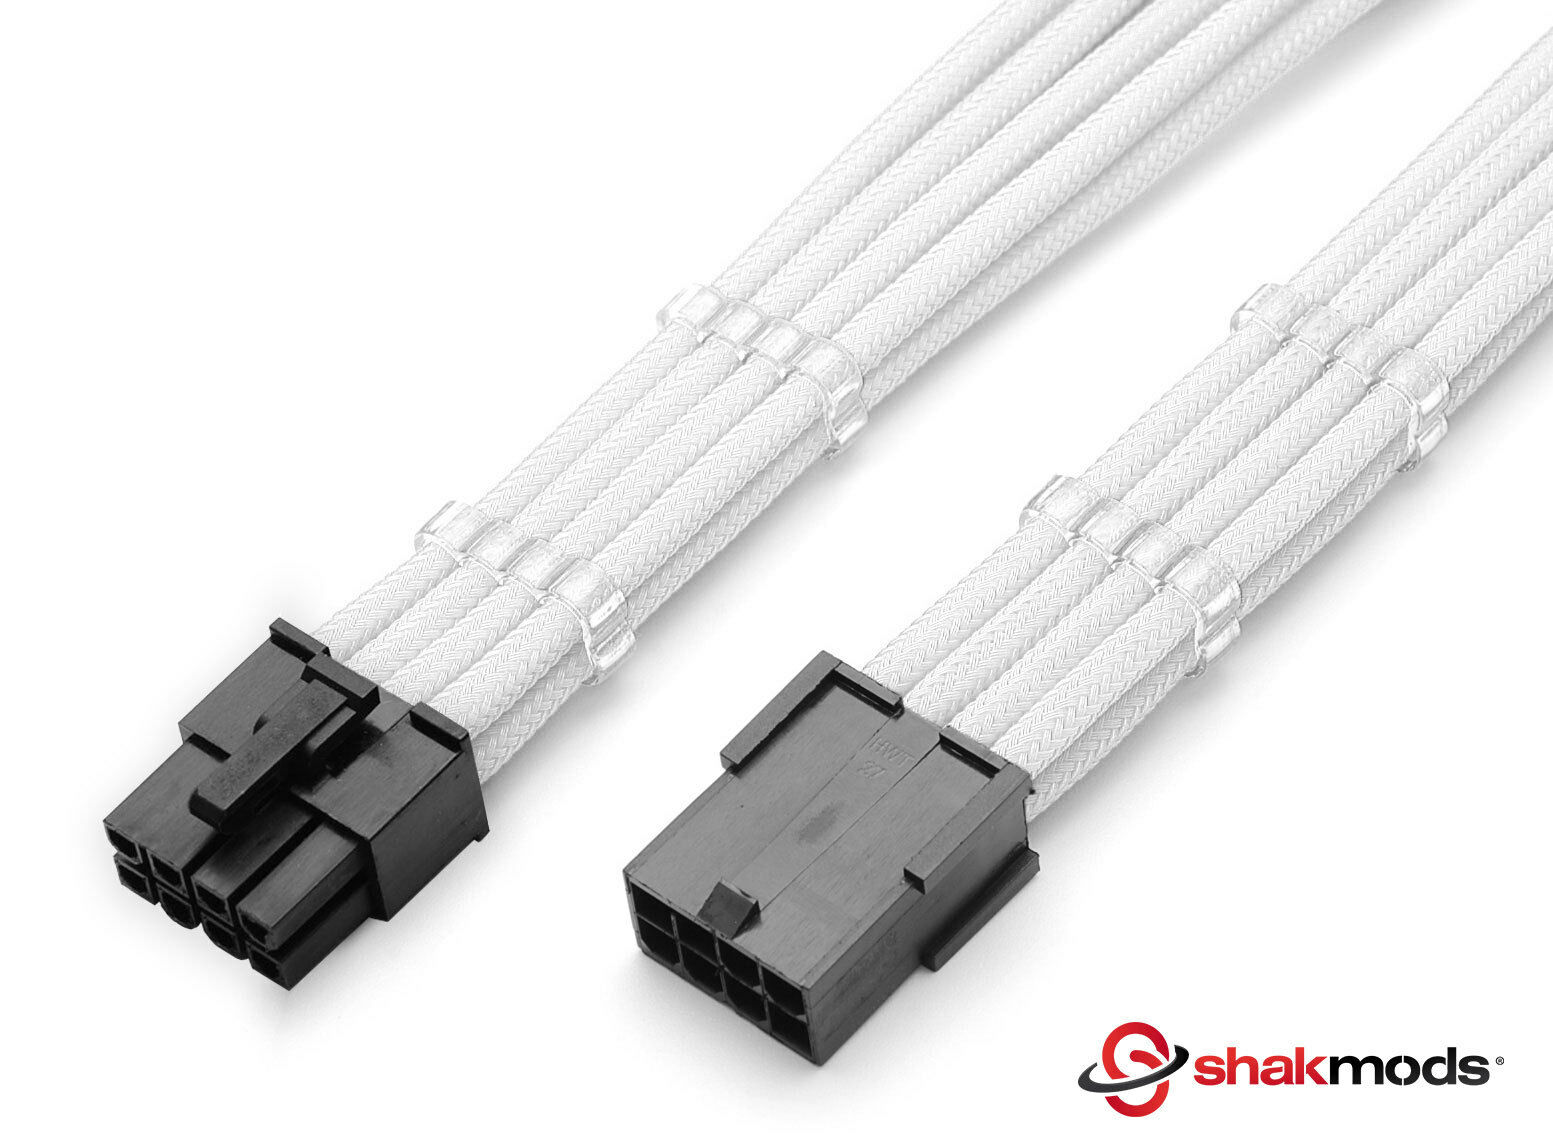 8 Pin White Atx Cpu Psu Sleeved Power Supply Extension Shakmods 2 Bitfenix 24 Cable Red Black 30 Cm Combs 1 Of 5free Shipping